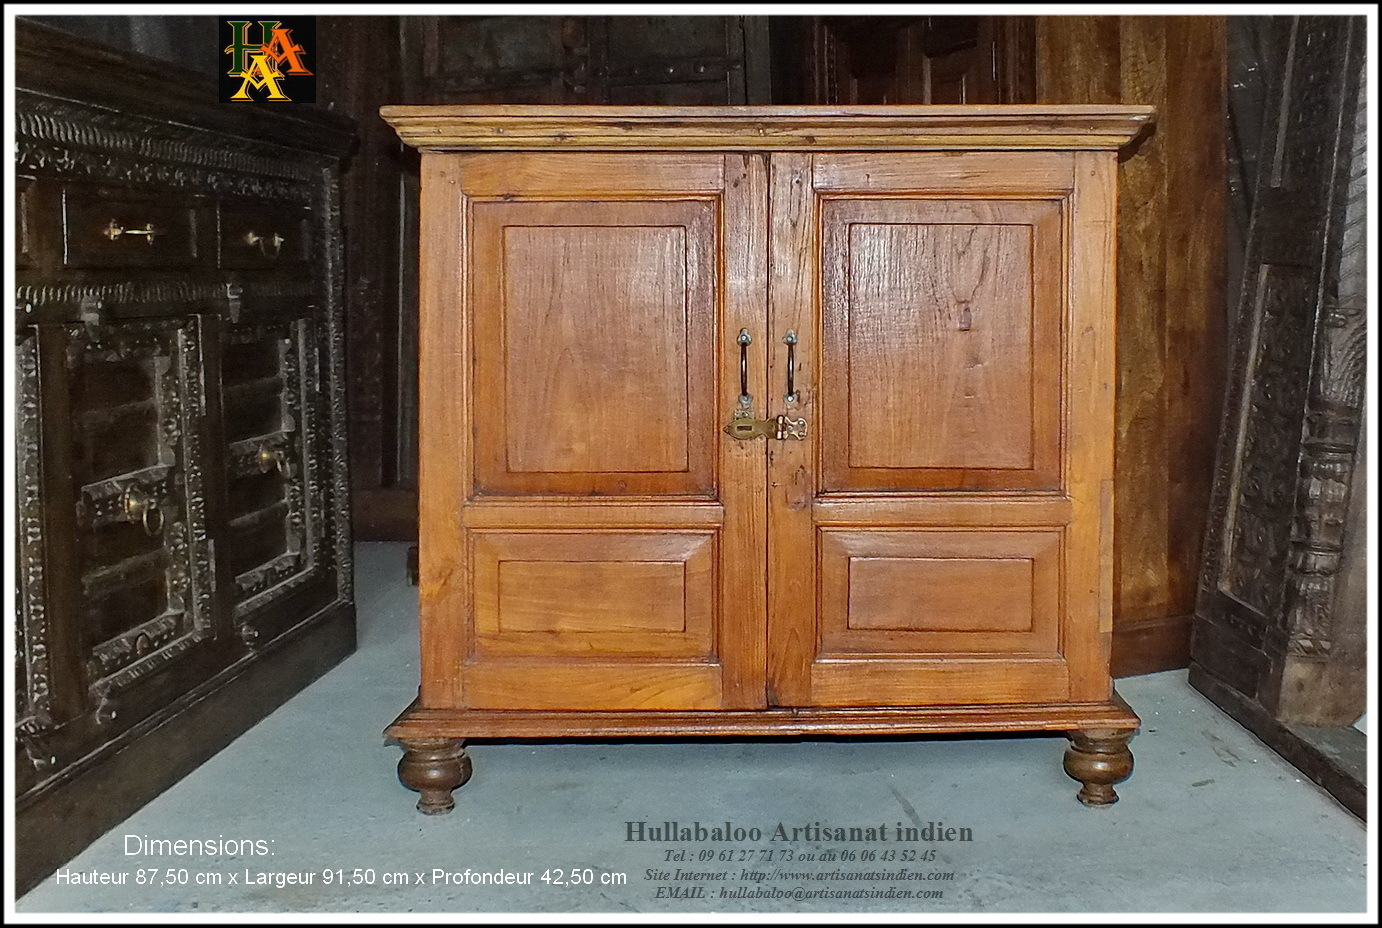 armoire ancienne indienne jn8 la027 meubles indiens d co inde. Black Bedroom Furniture Sets. Home Design Ideas